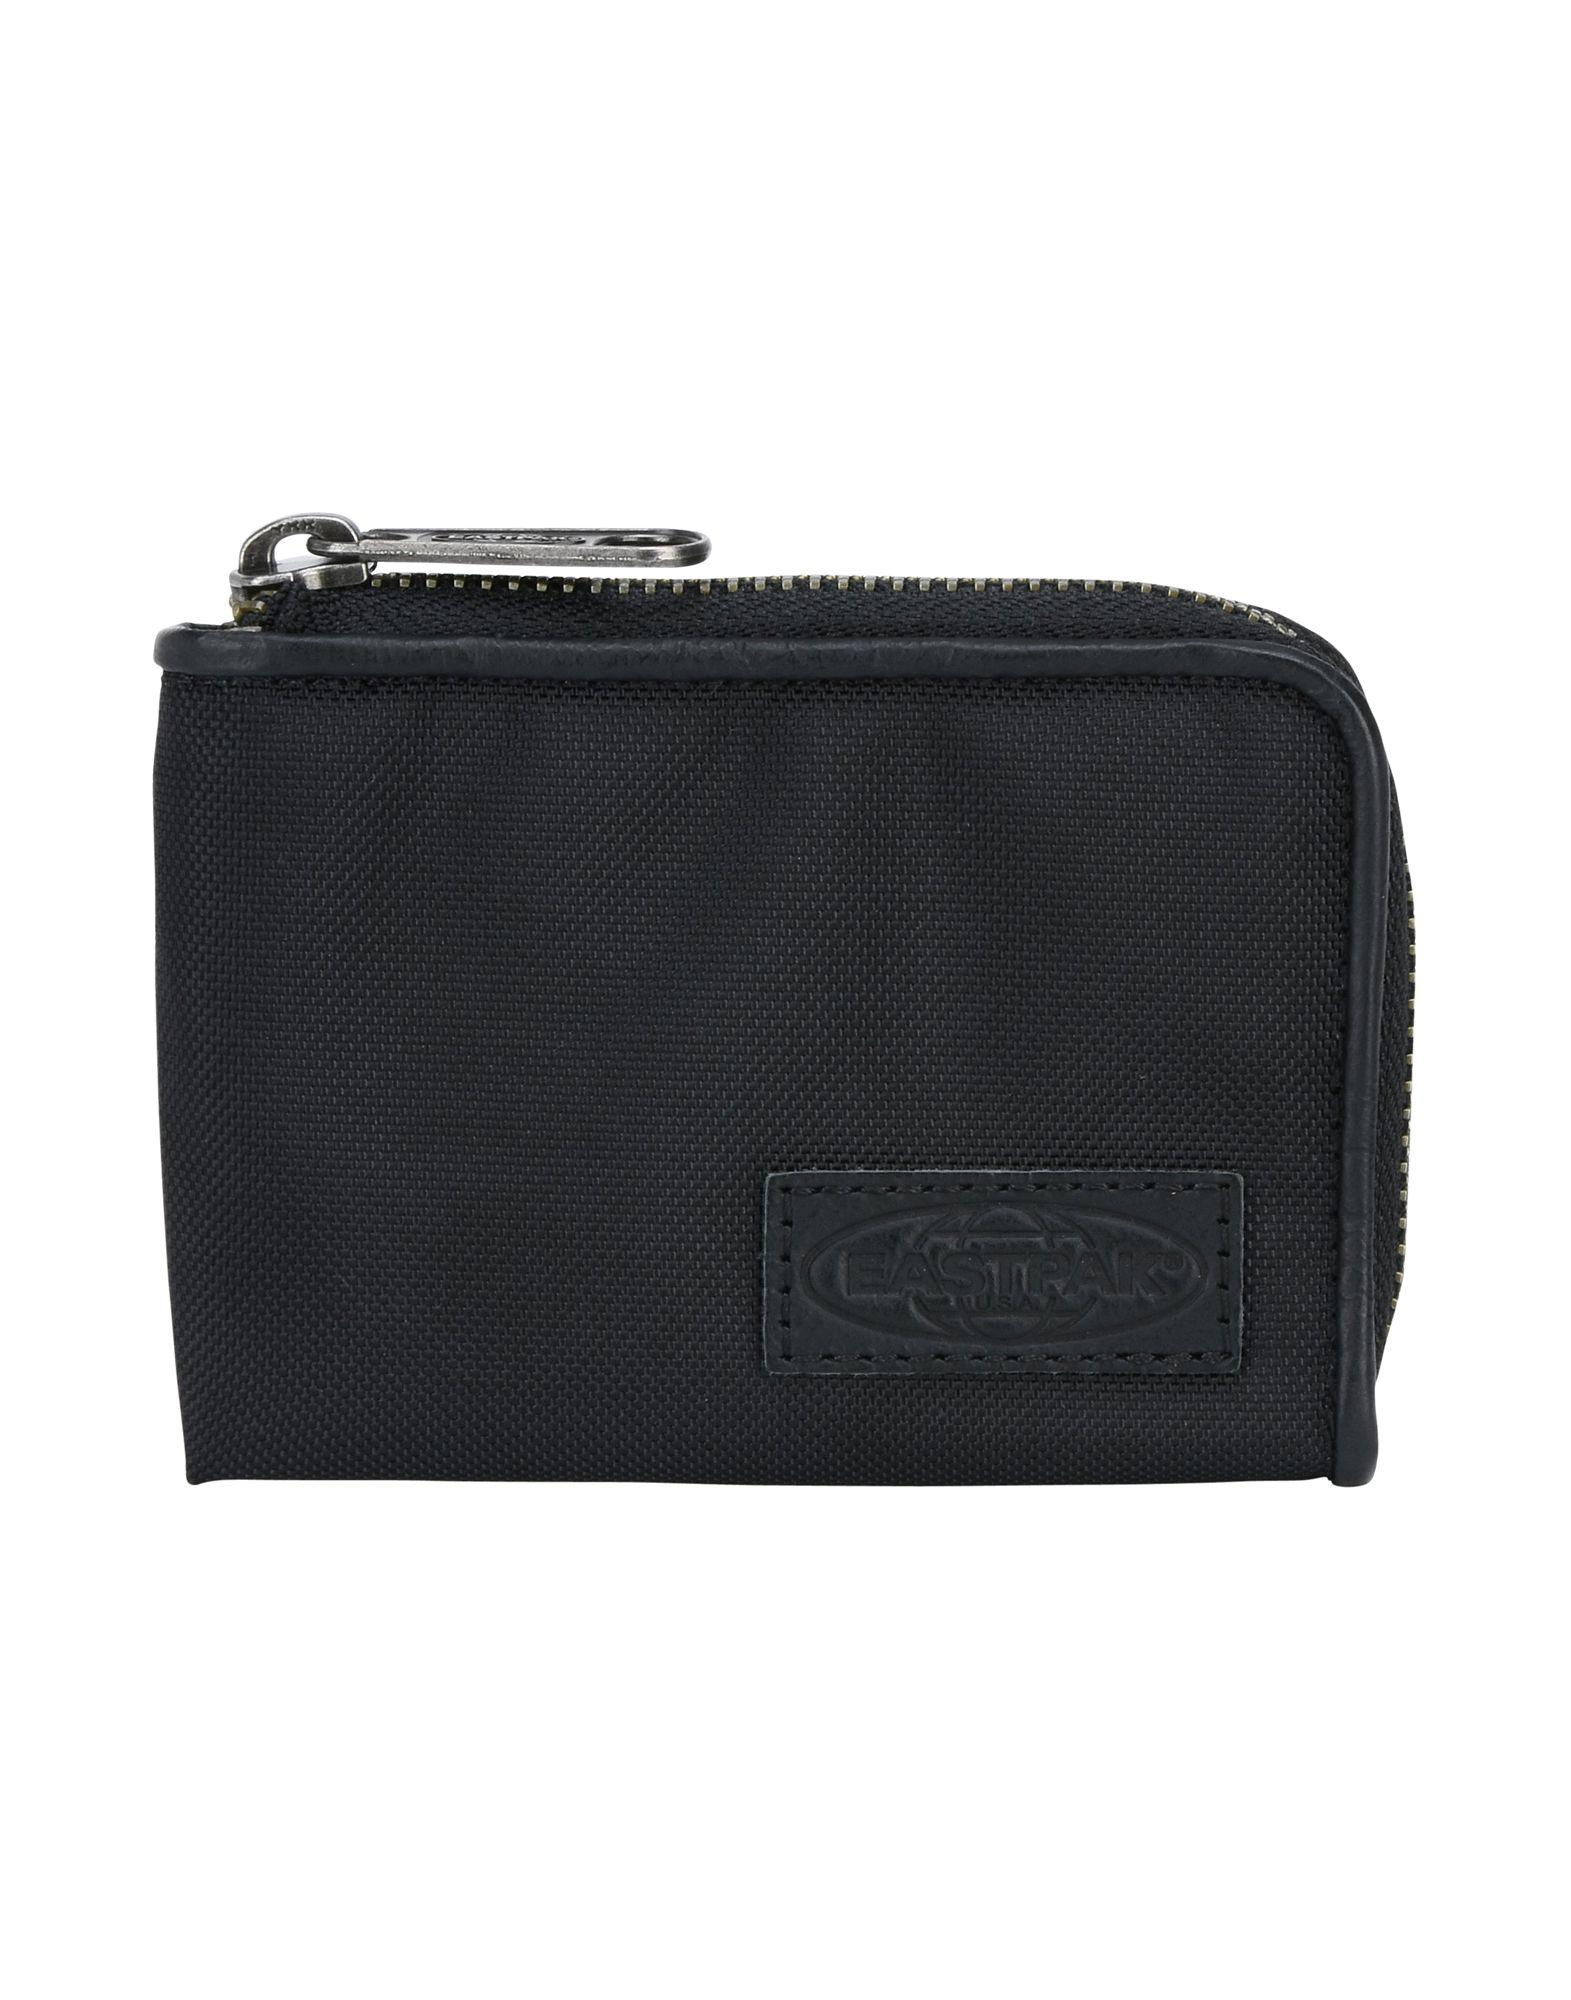 Small Leather Goods - Coin purses Eastpak Suqs52S